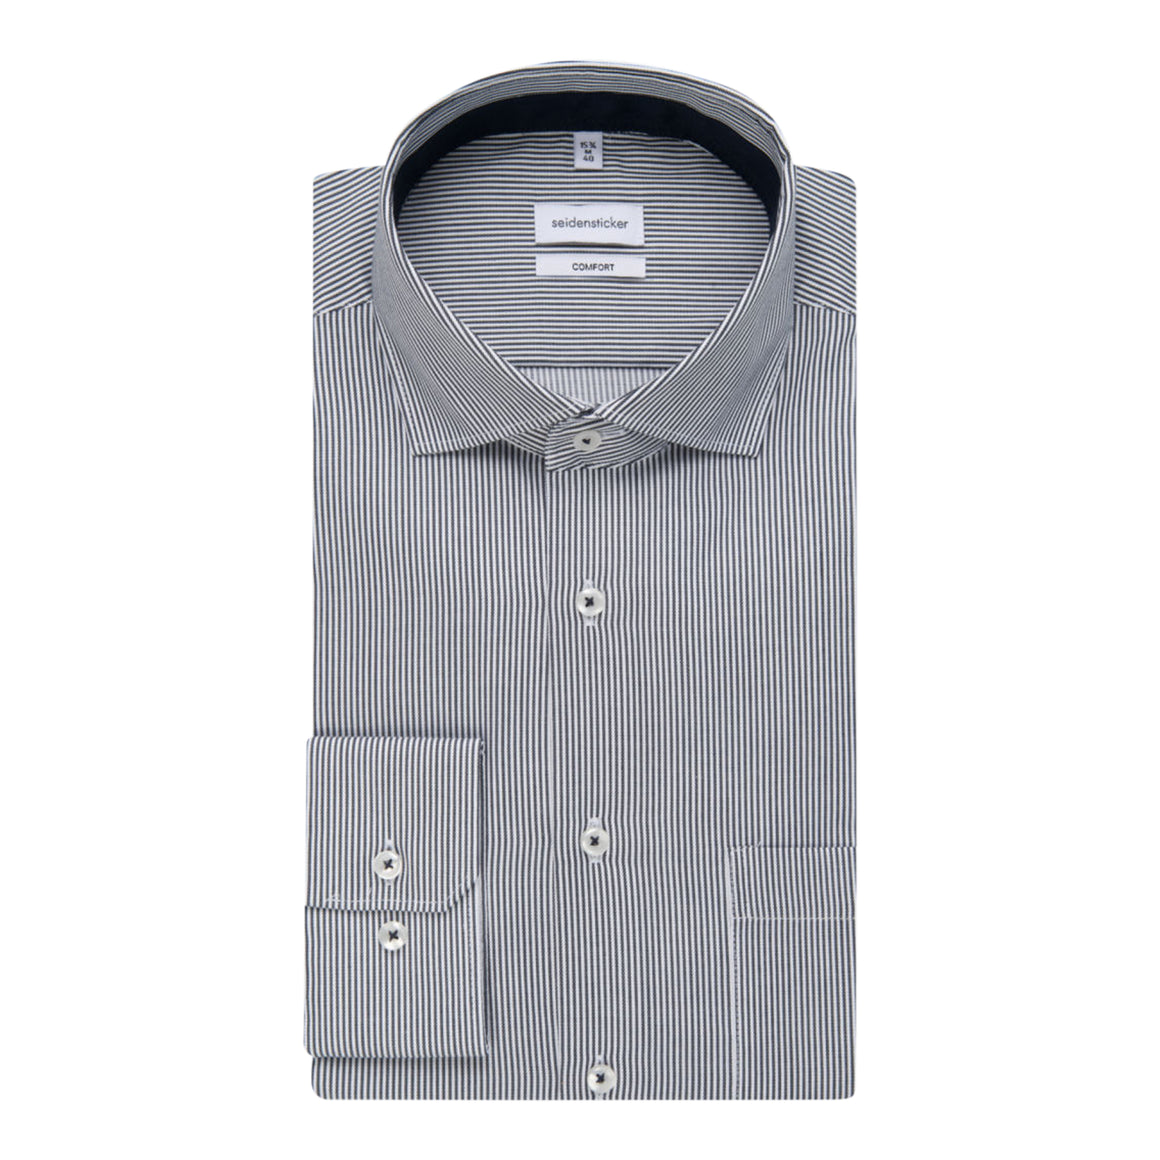 Rope Stripe Shirt for Men in Charcoal